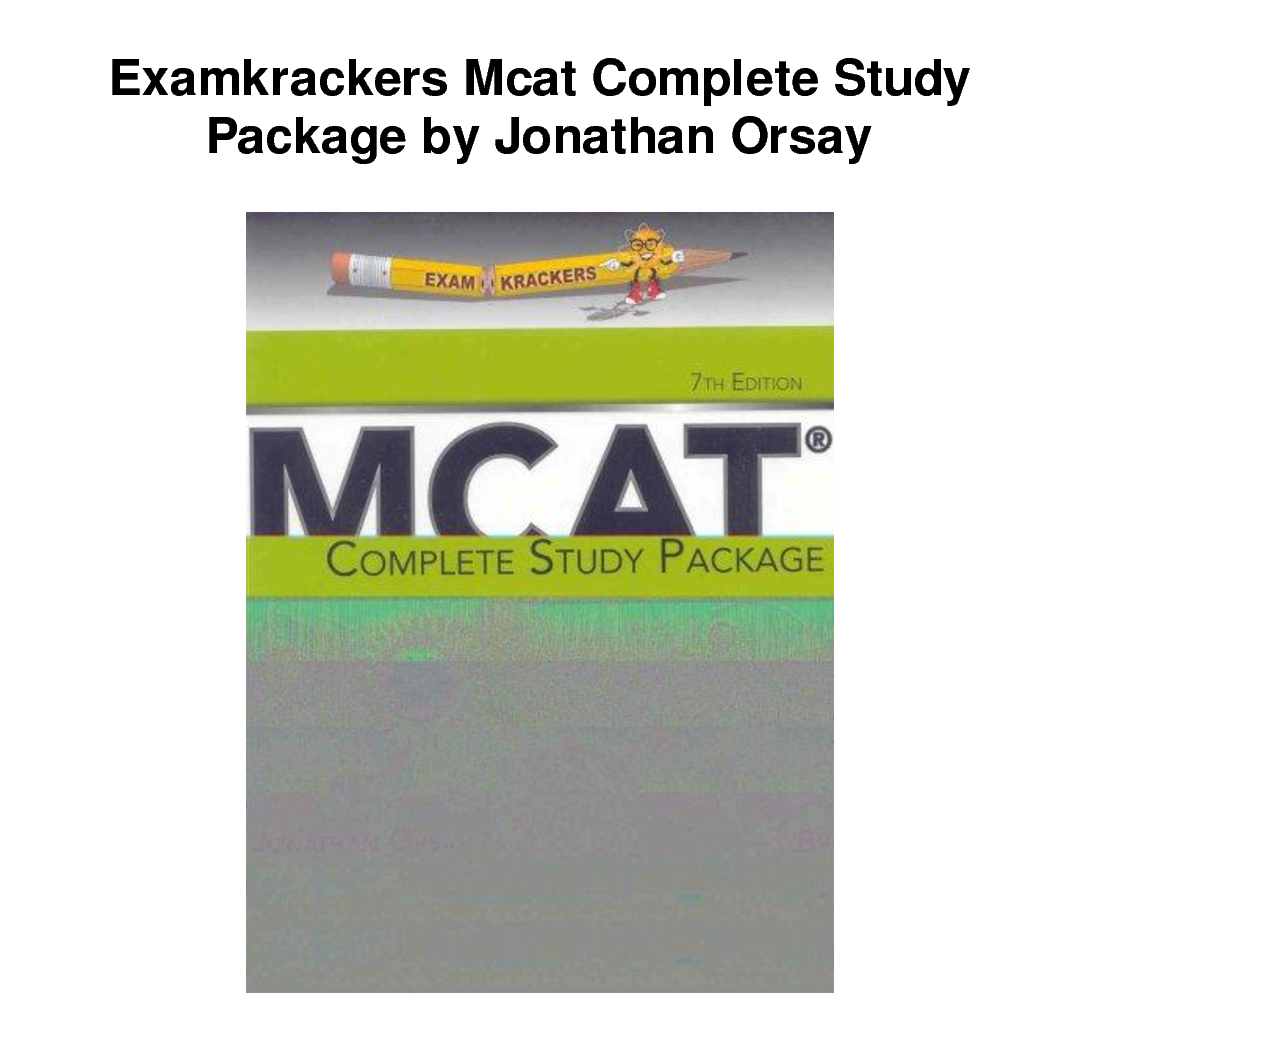 Most Recommended Books for Preparation of MCAT Test 2014